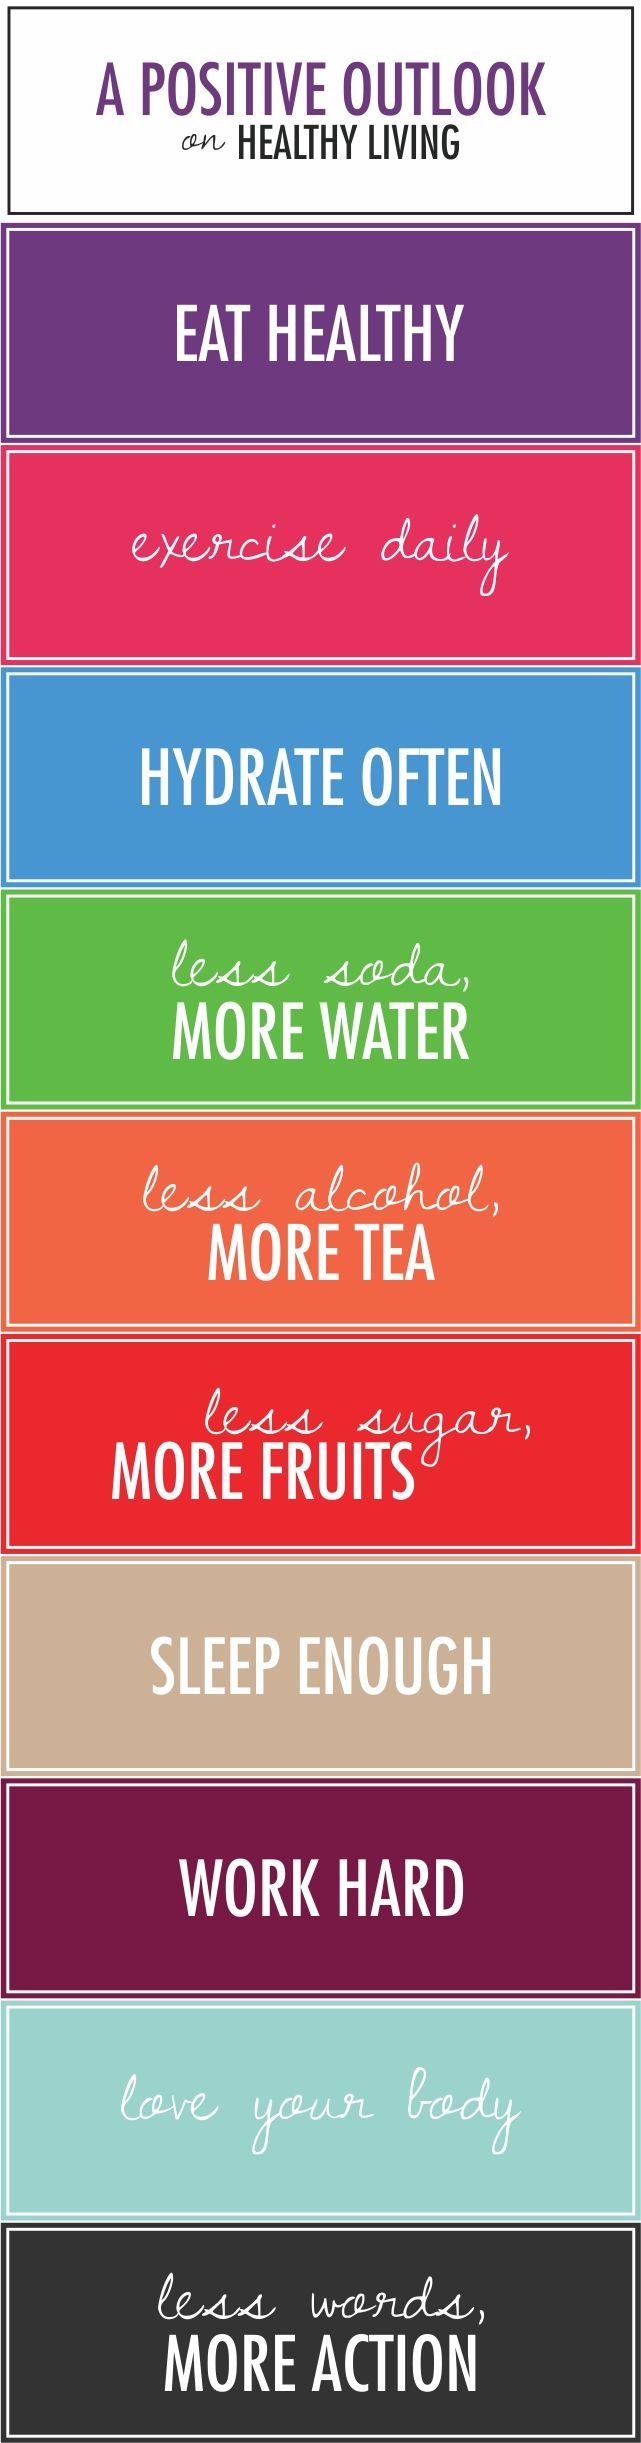 A Positive Outlook on Healthy Living